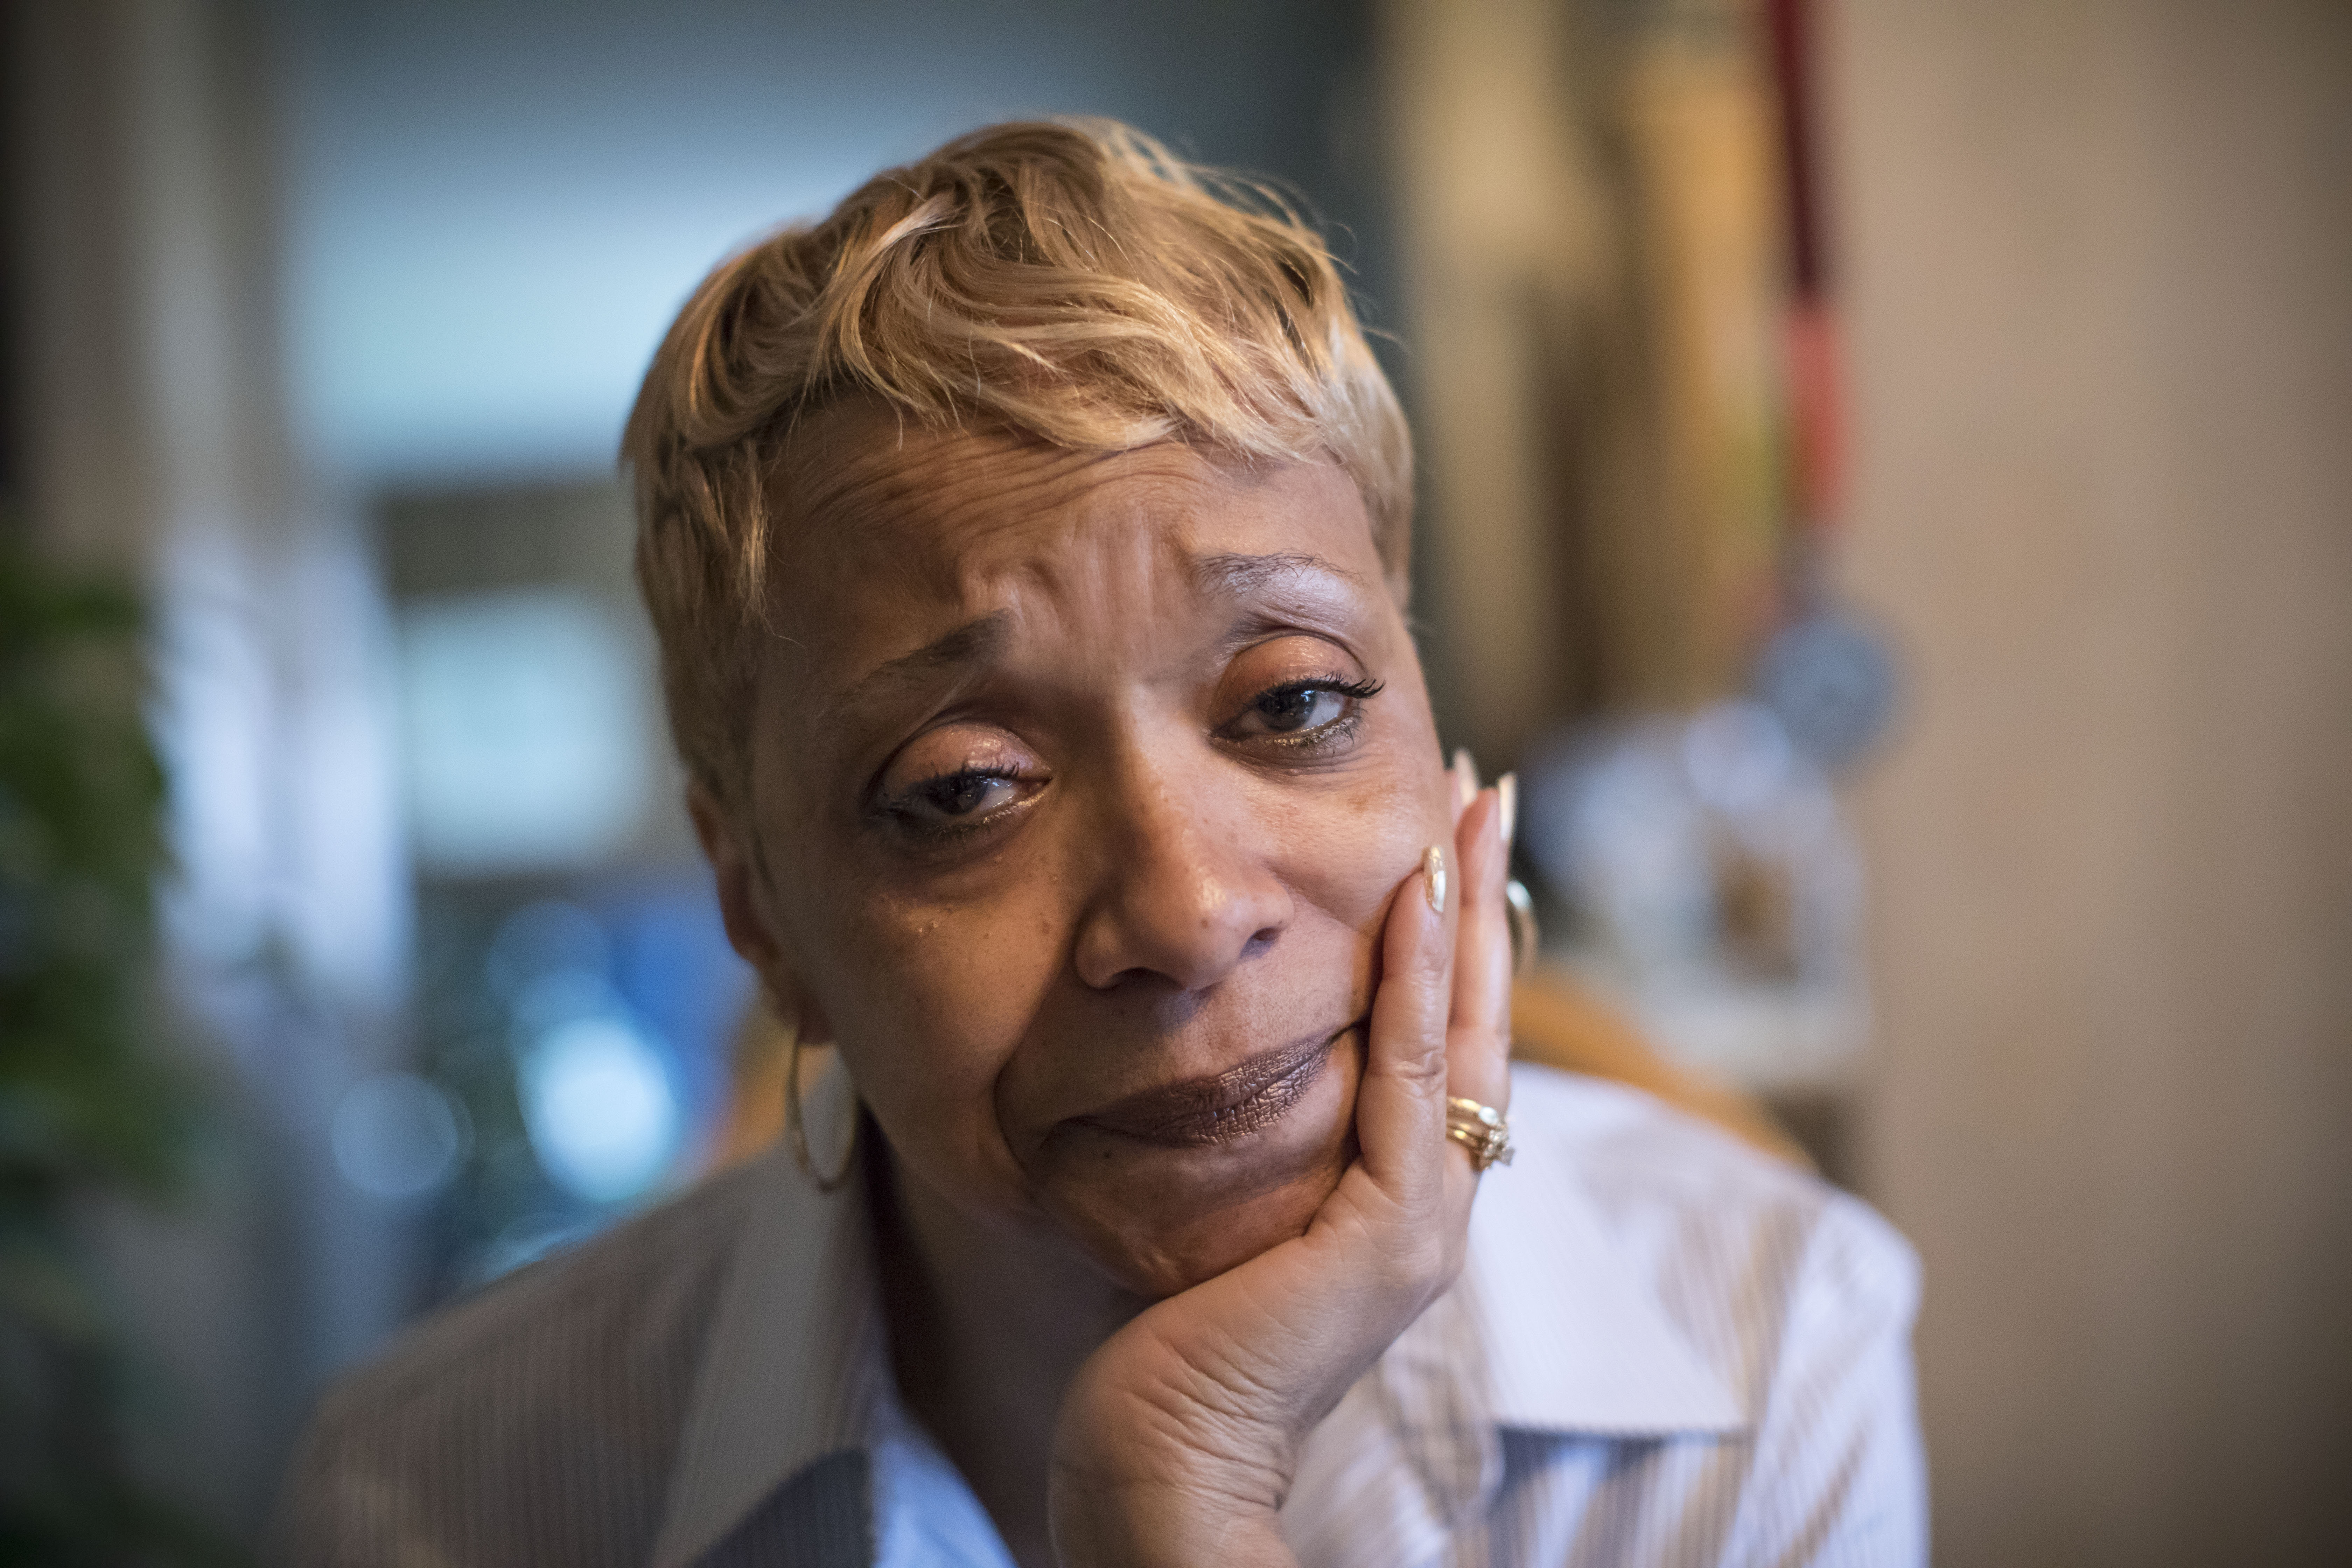 Sandra Green lost both of her sons – Steven Barney Jr., 31, and Corey Green, 21 – to gun violence in 2007. (Derek Gee/Buffalo News)